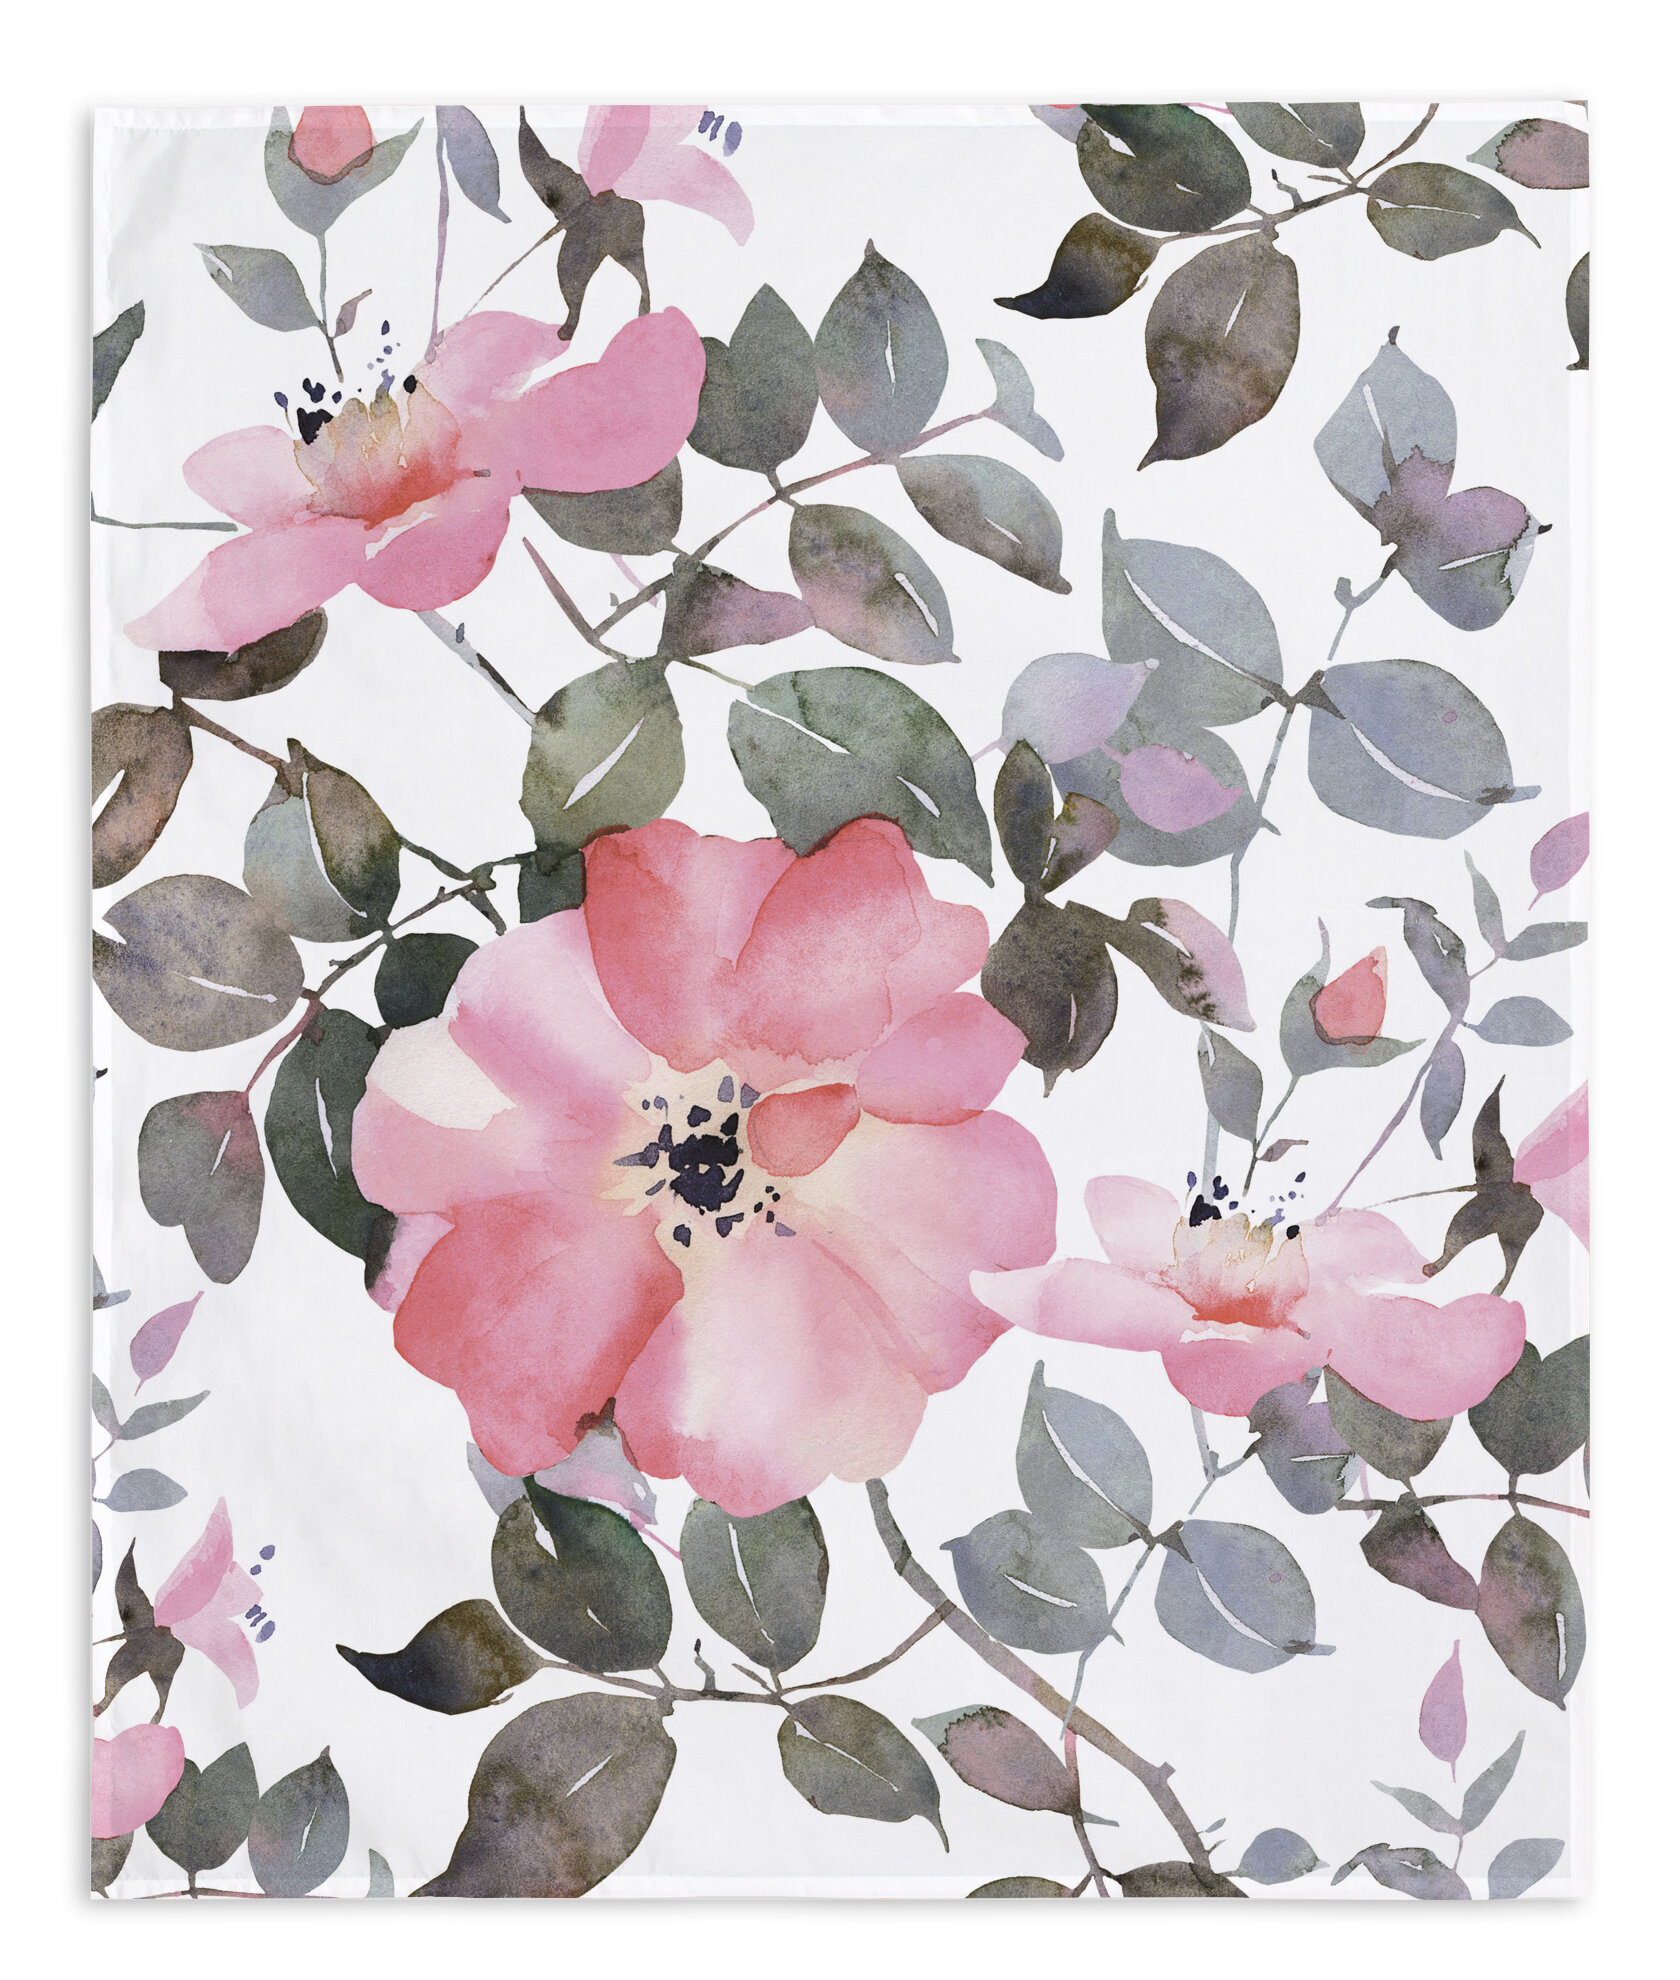 Watercolor Flower Wall Tapestry Intended For Latest Blended Fabric Spring Blossom Tapestries (View 15 of 20)